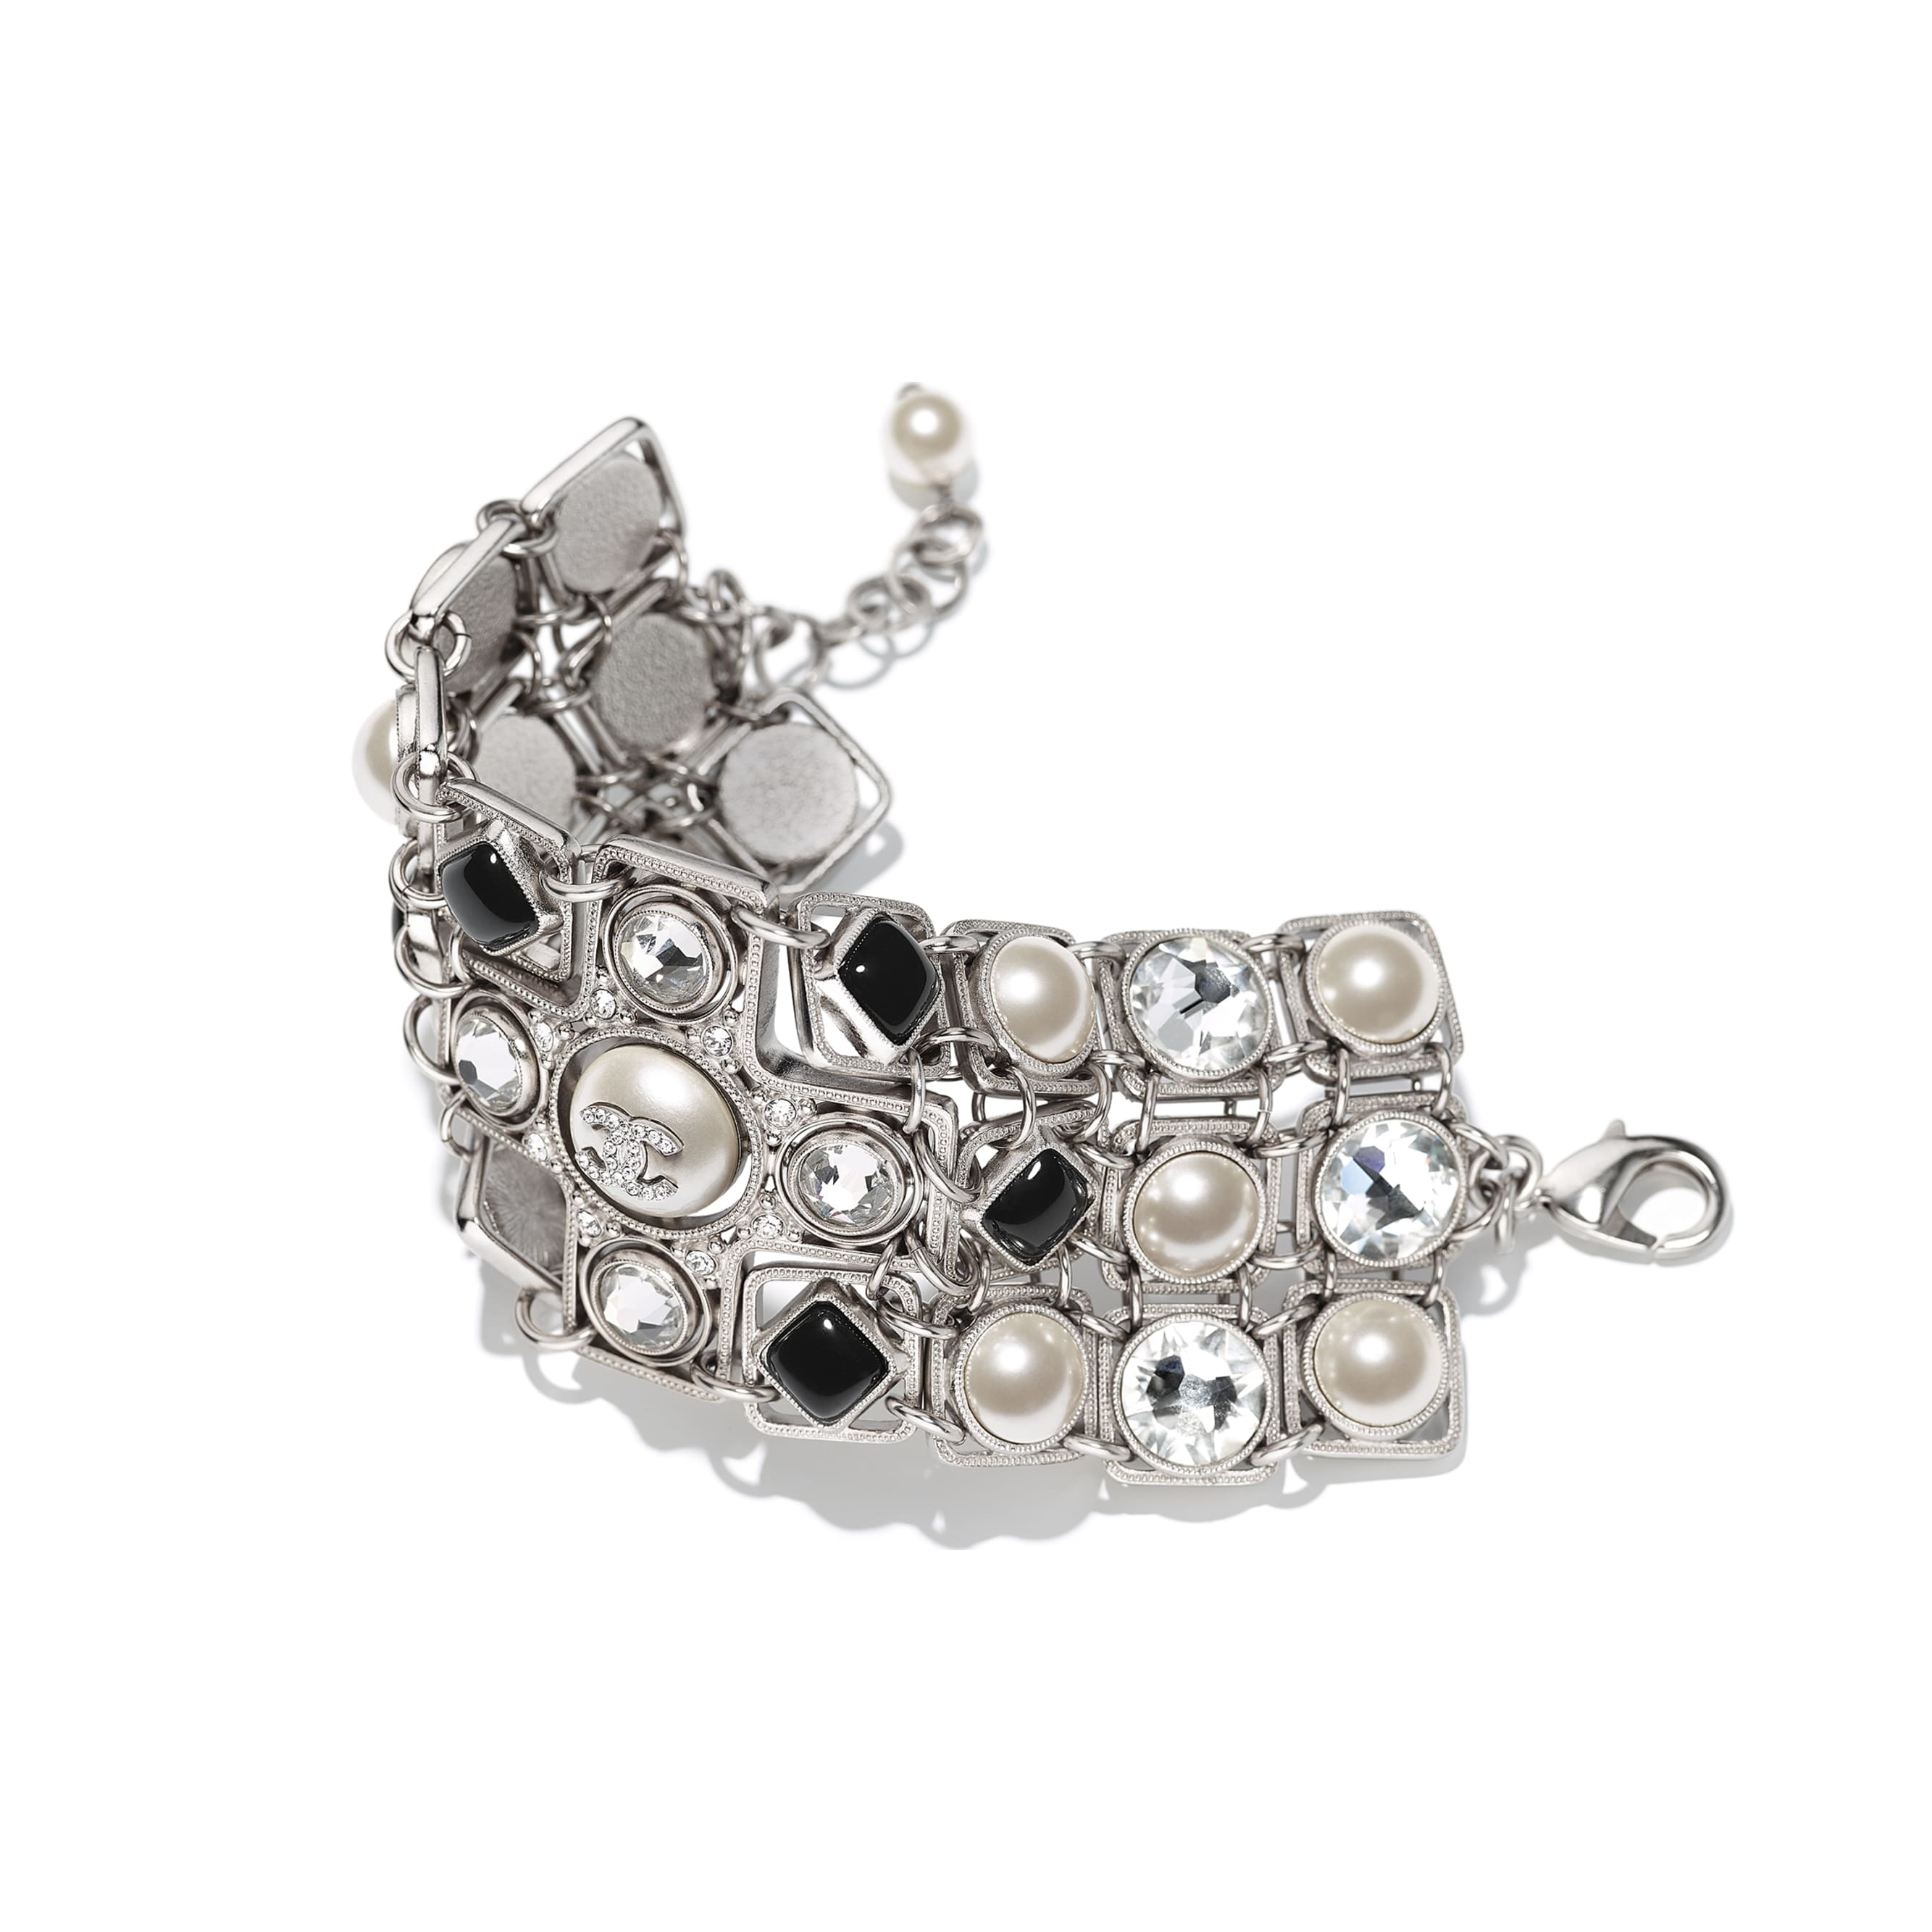 Bracelet - Silver, Pearly White, Black & Crystal - Metal, Glass Pearls, Glass & Strass - CHANEL - Alternative view - see standard sized version